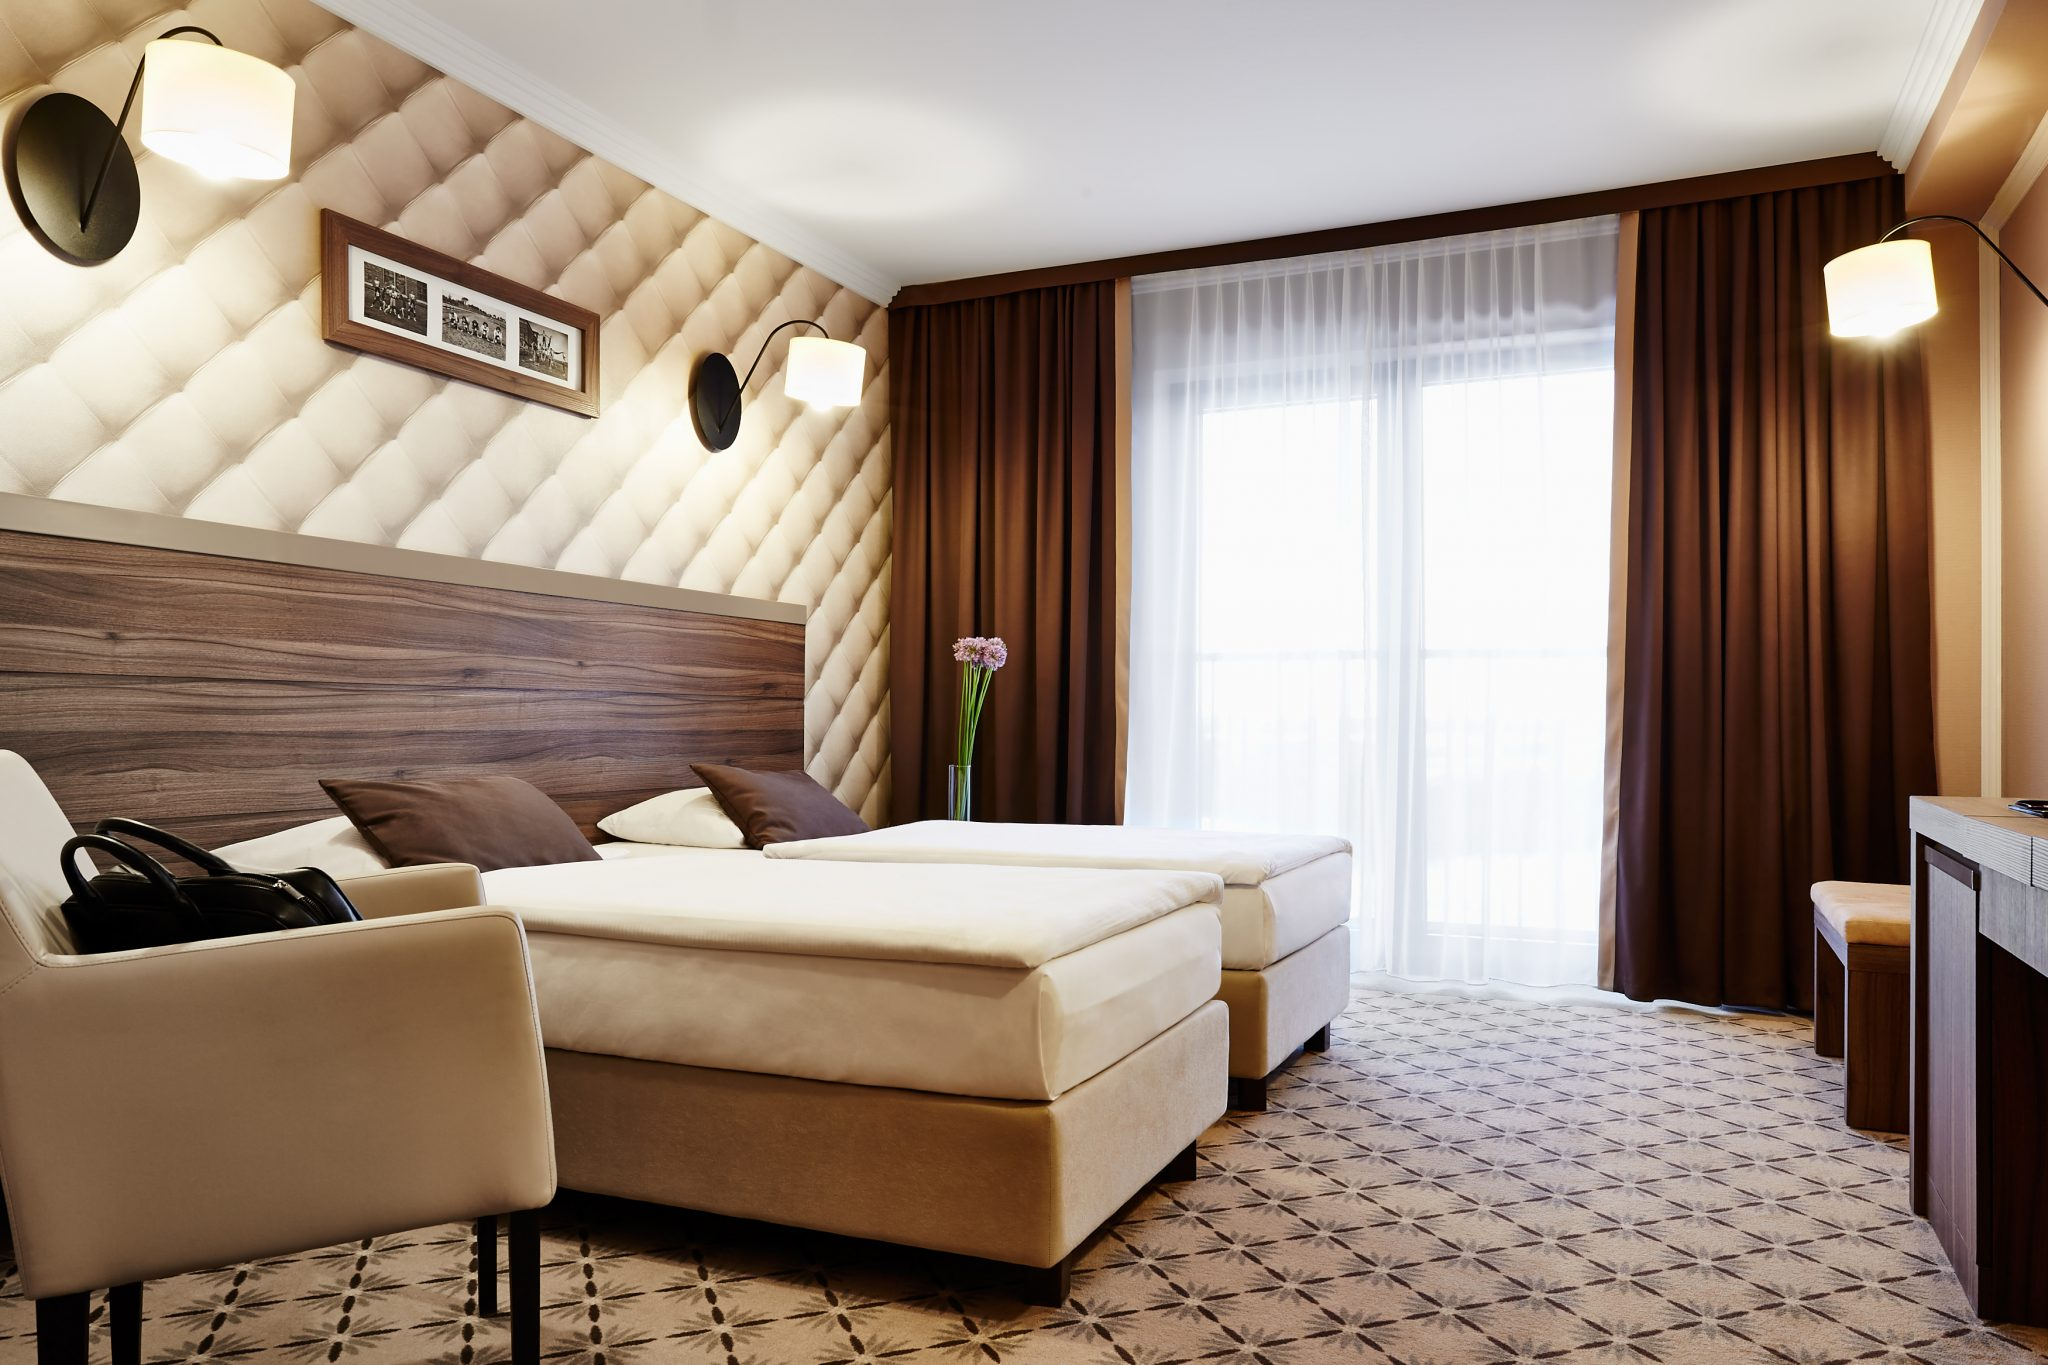 Pro football camps - Mistral Hotel bedroom - Road to Sport